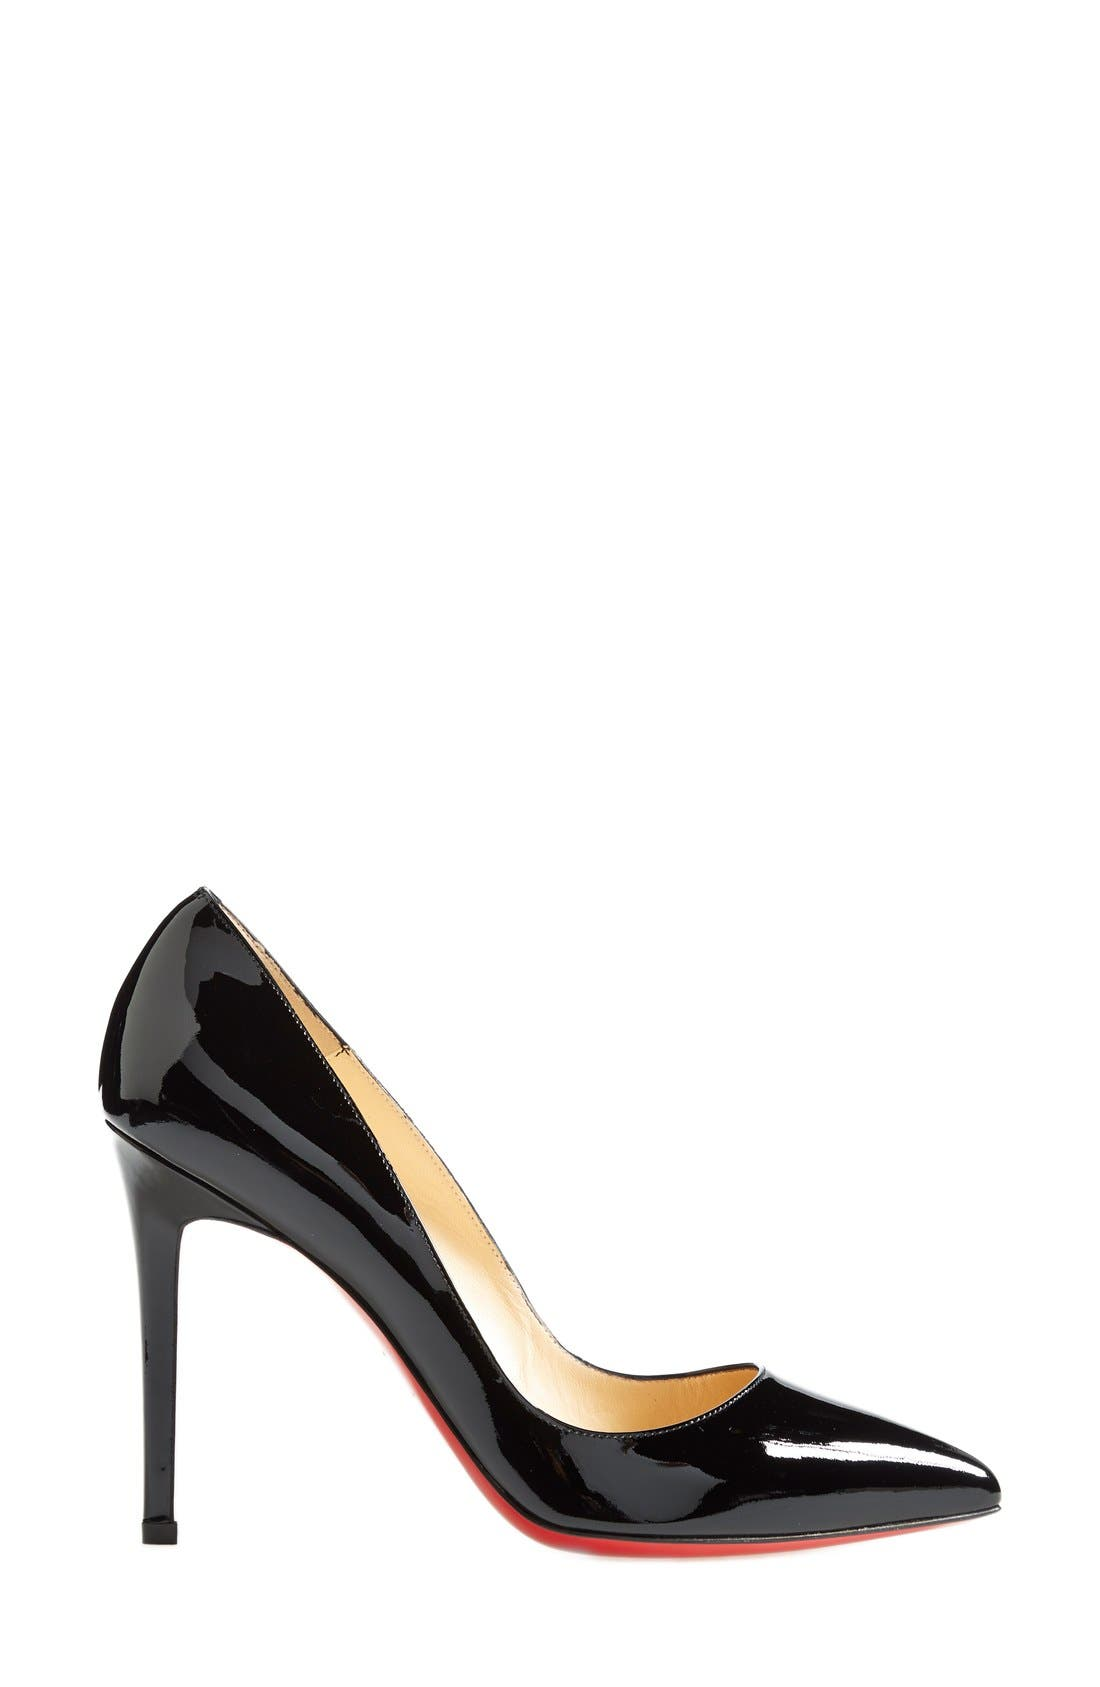 'Pigalle' Pointy Toe Pump,                             Alternate thumbnail 2, color,                             BLACK